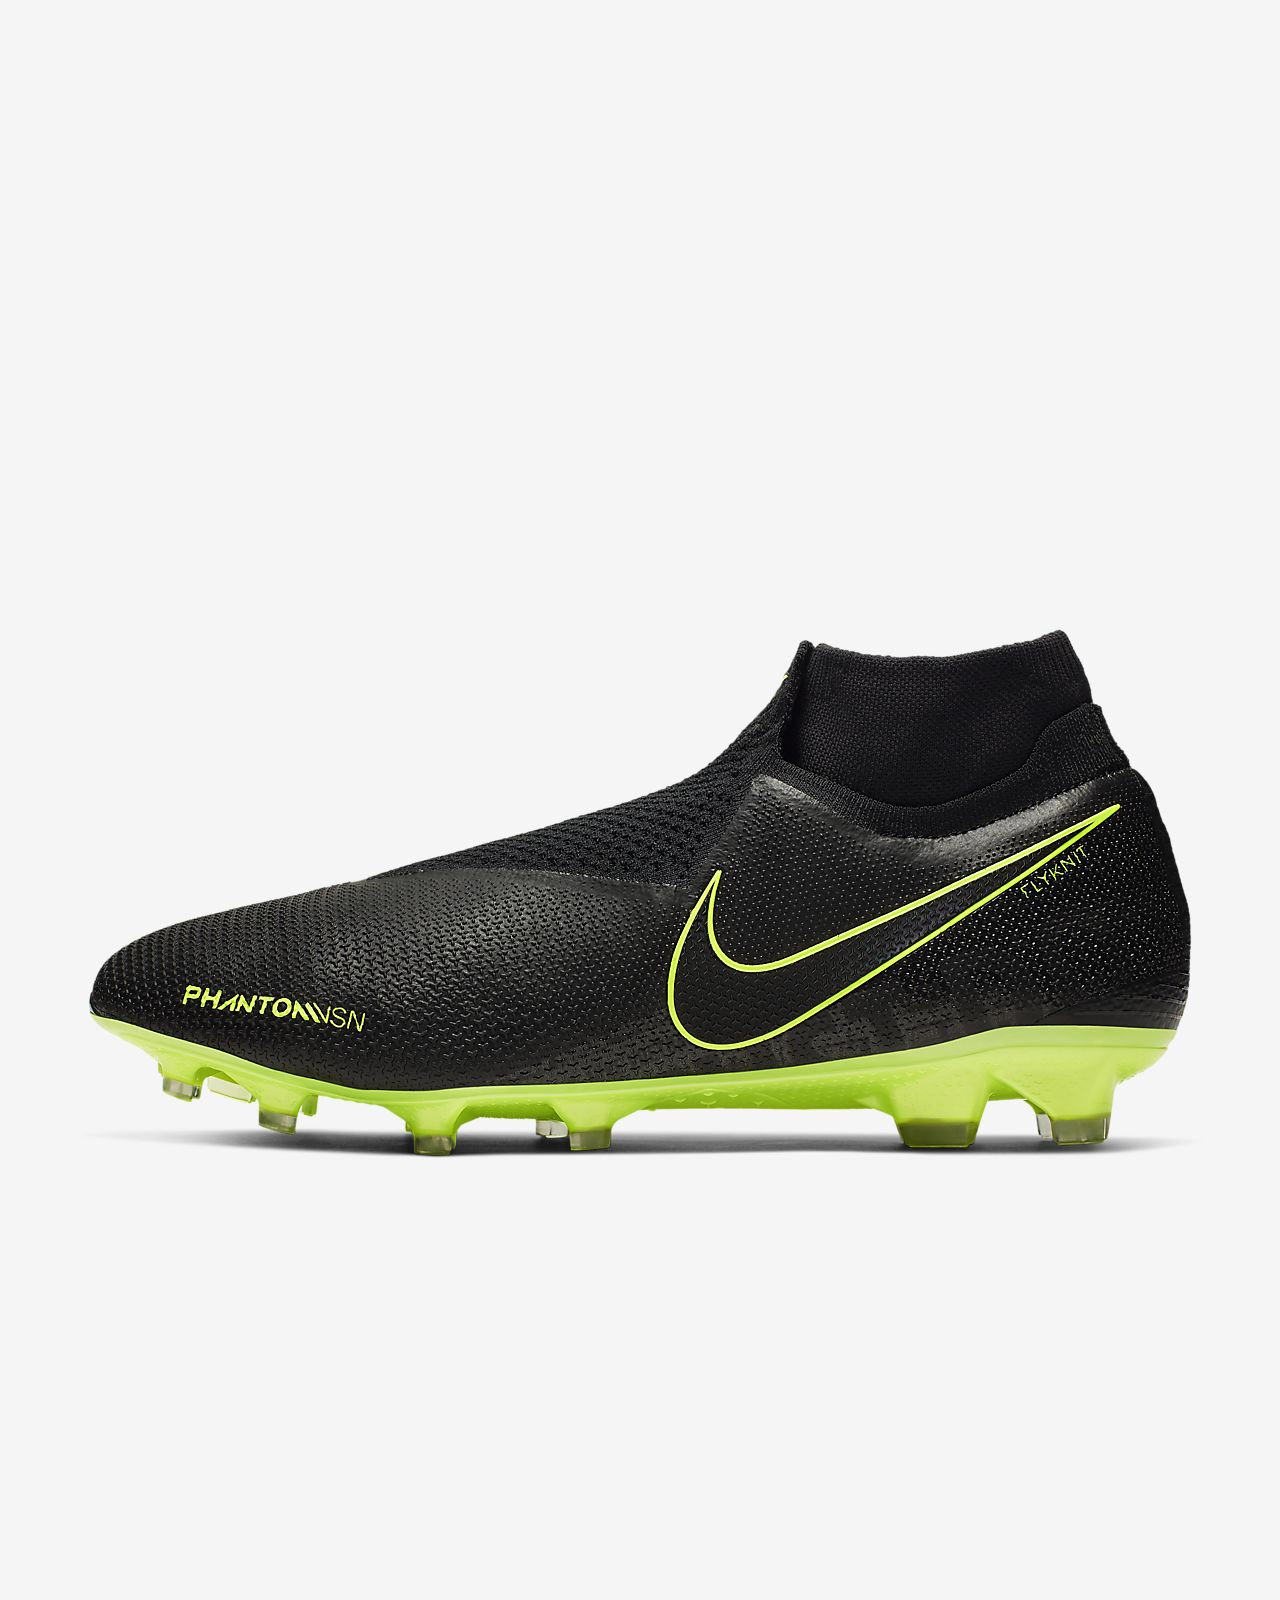 14139ef5e Nike Phantom Vision Elite Dynamic Fit FG Firm-Ground Soccer Cleat ...